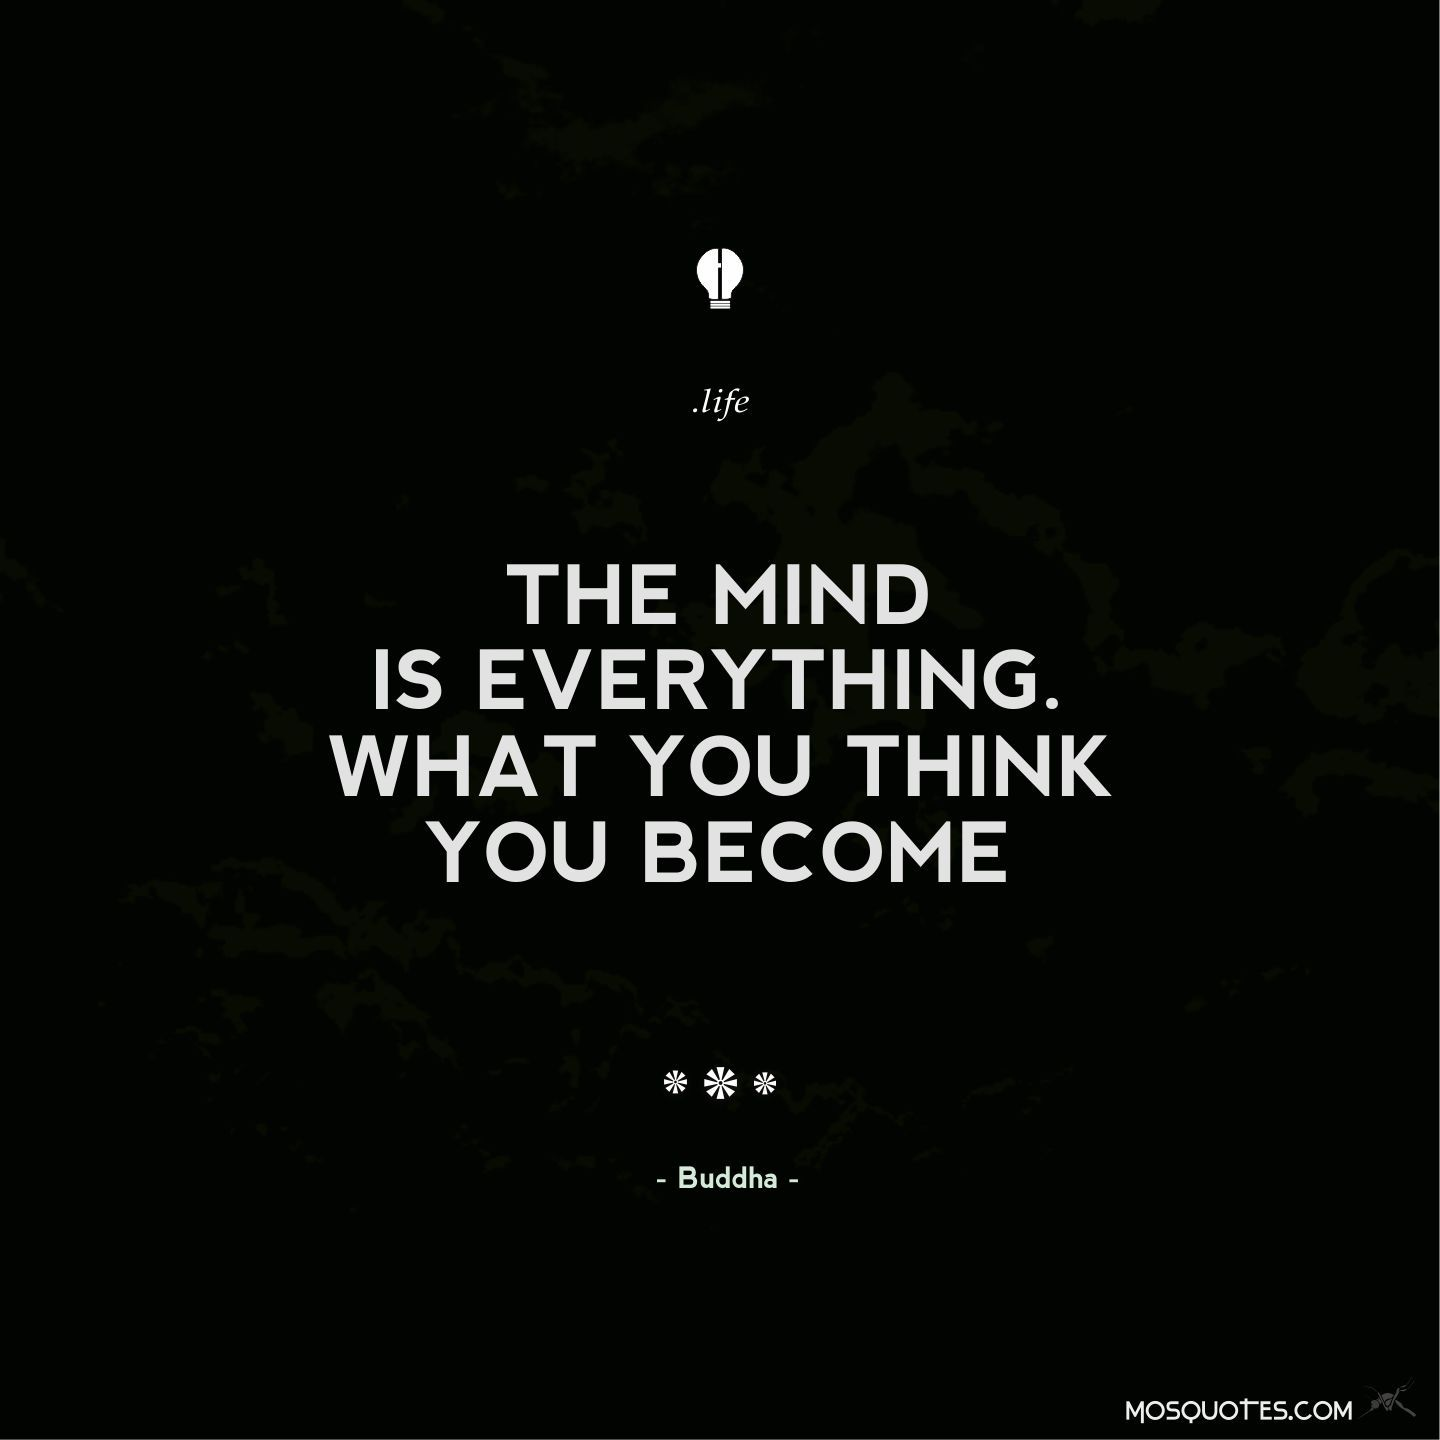 Life Inspirational Quotes The Mind Is Everything What You Think You